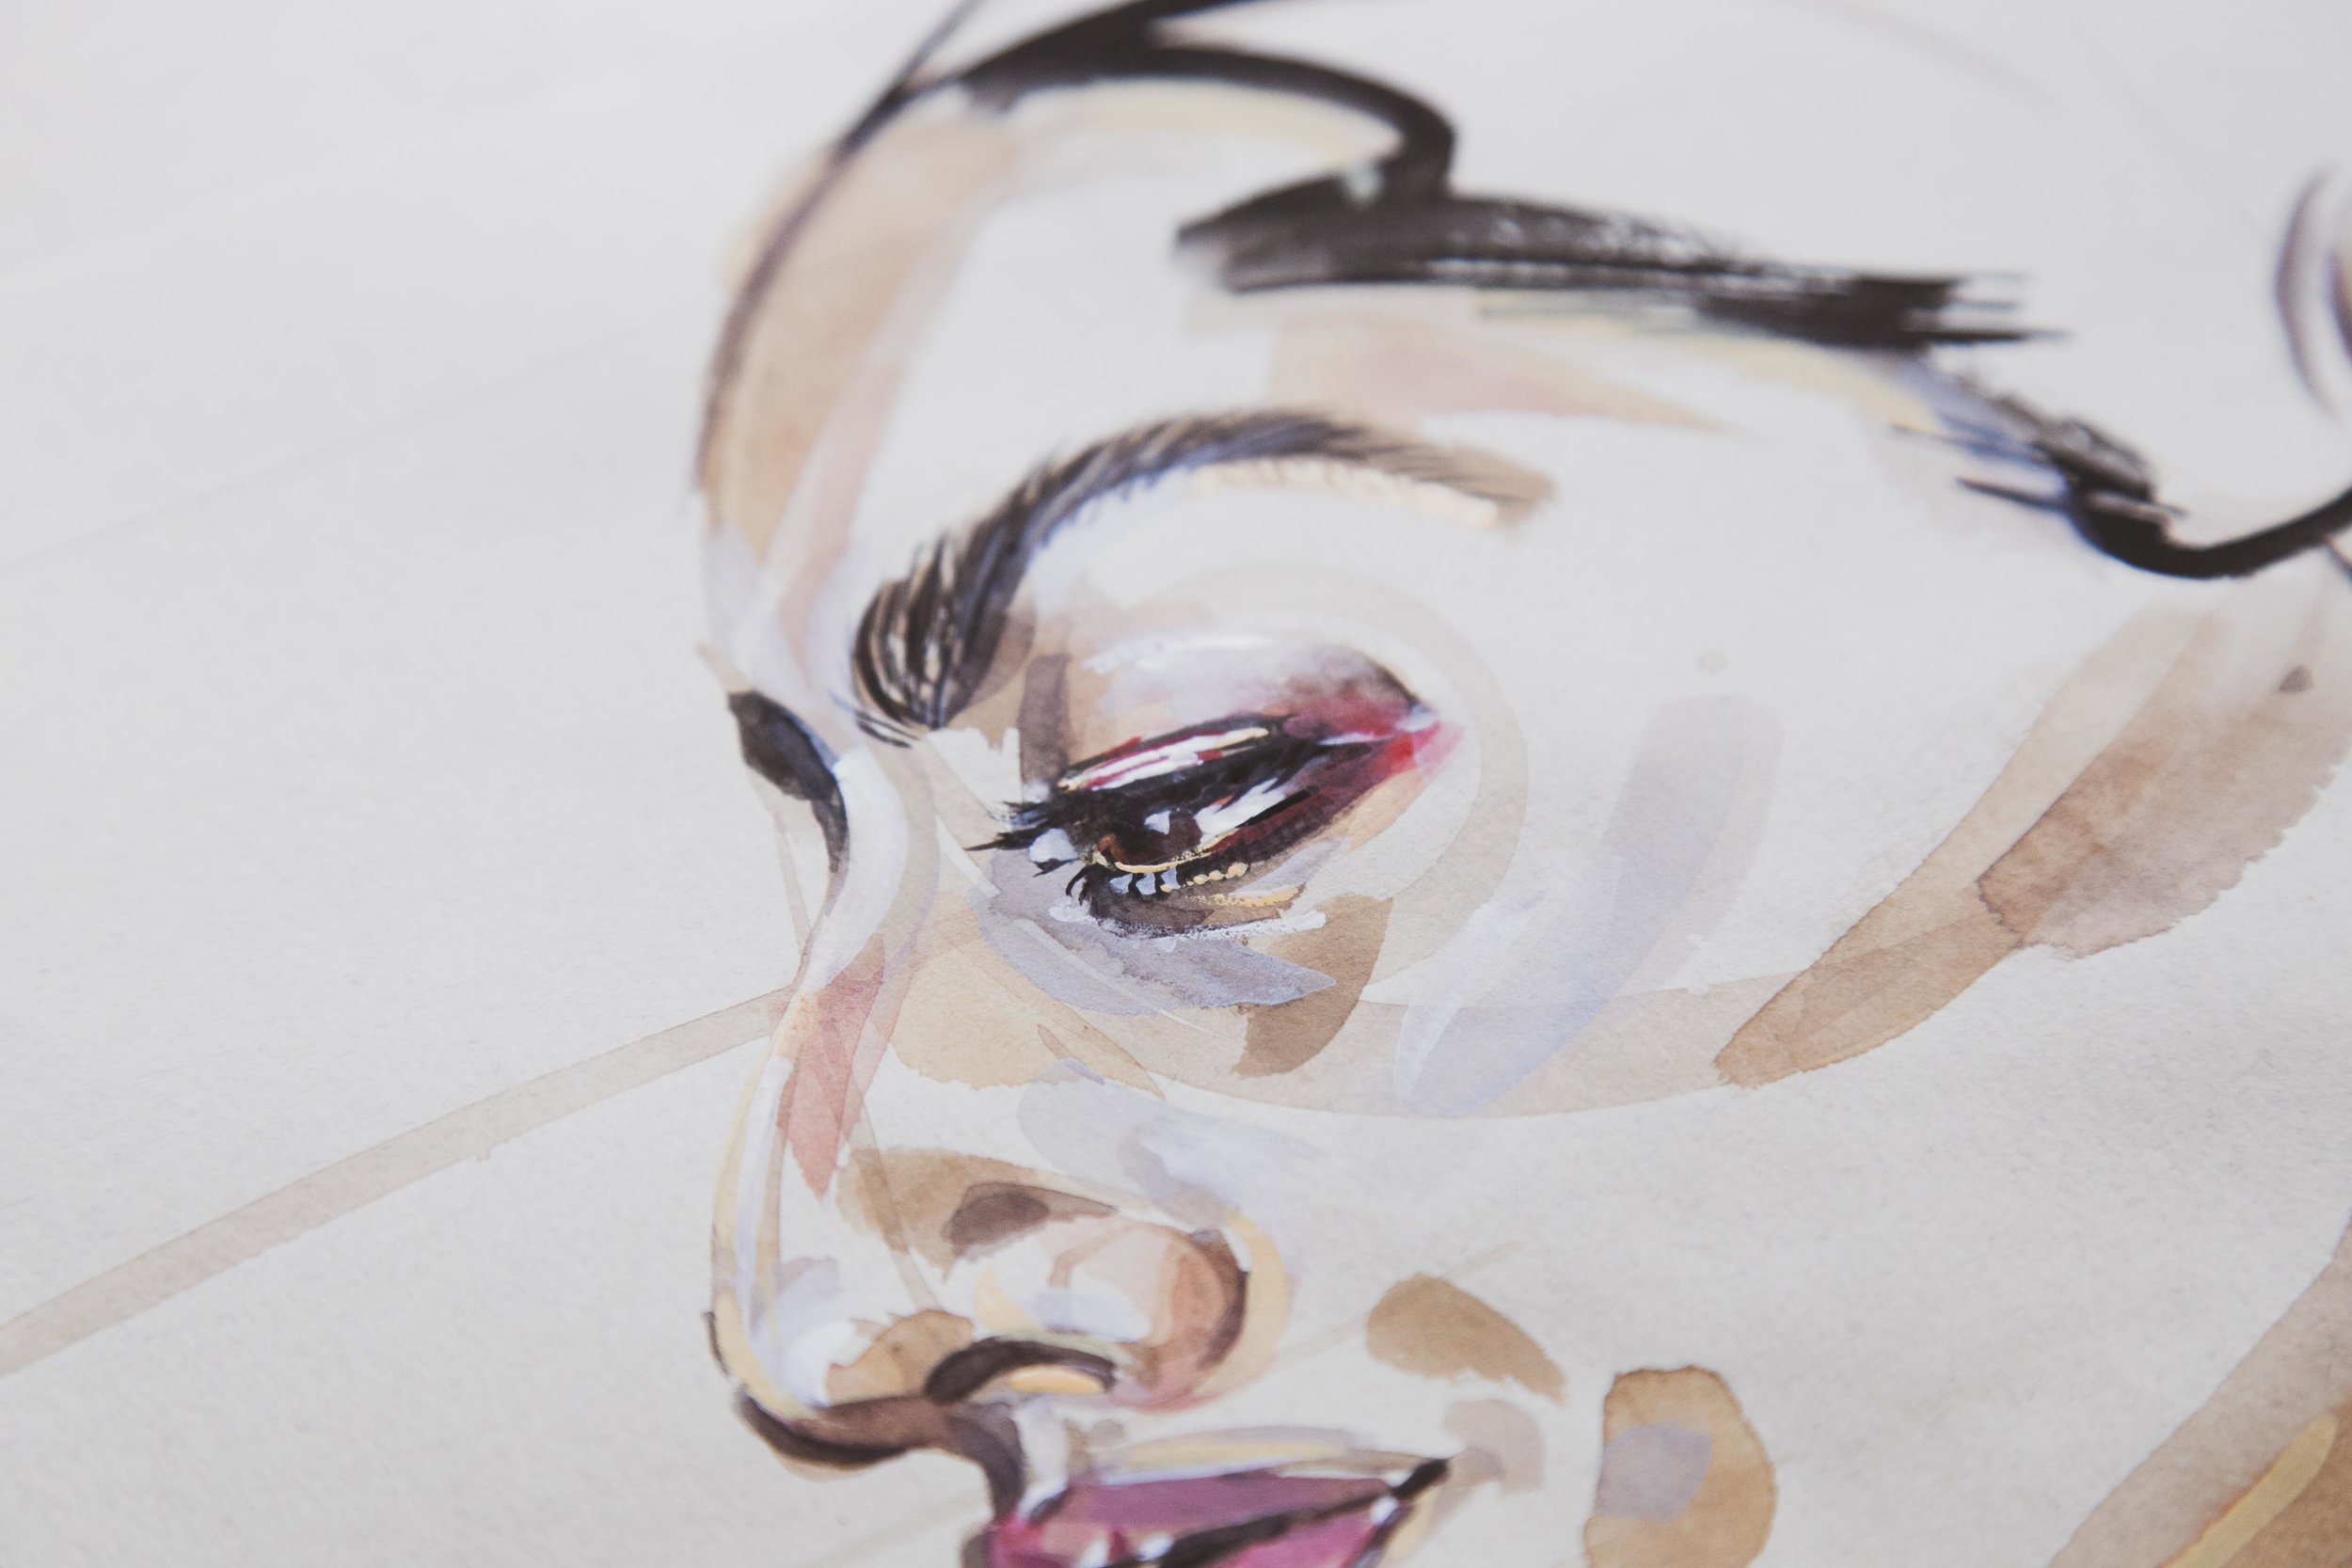 Victoria-Riza Fashion Illustrator and Artist | Beauty portrait in watercolor and gouache on nideggen paper